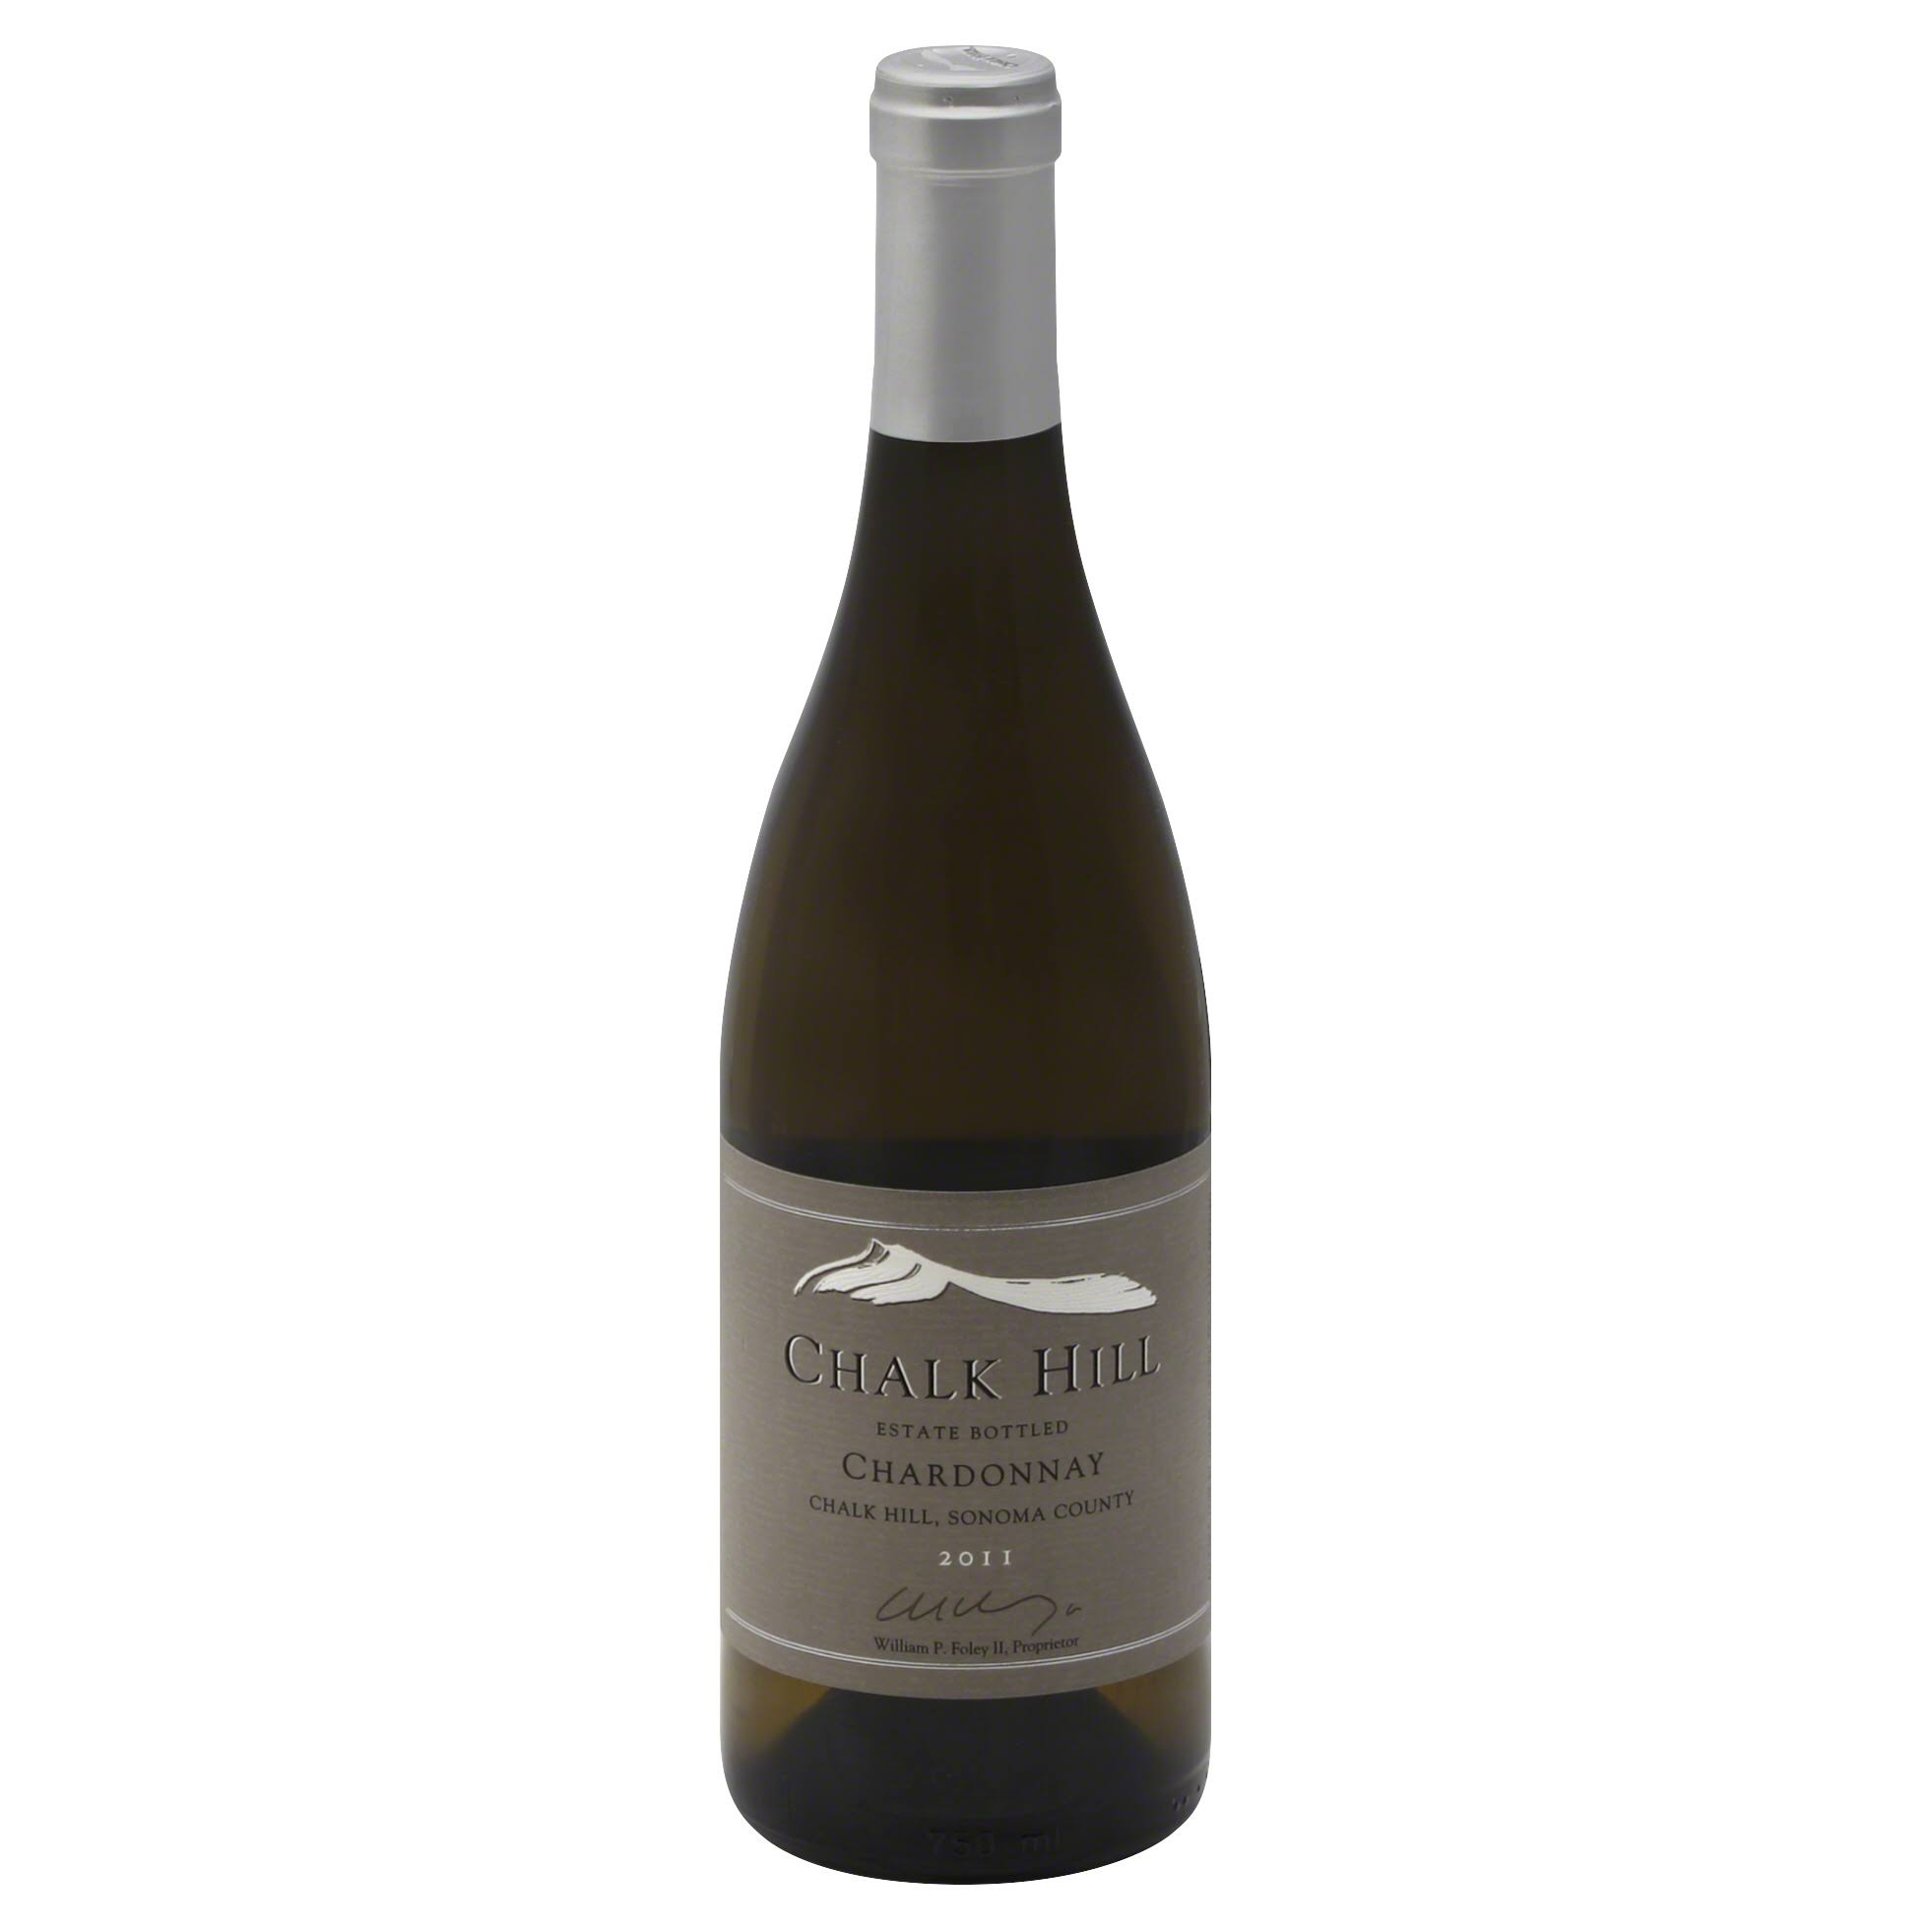 Chalk Hill Chardonnay, Chalk Hill, Sonoma County, 2011 - 750 ml